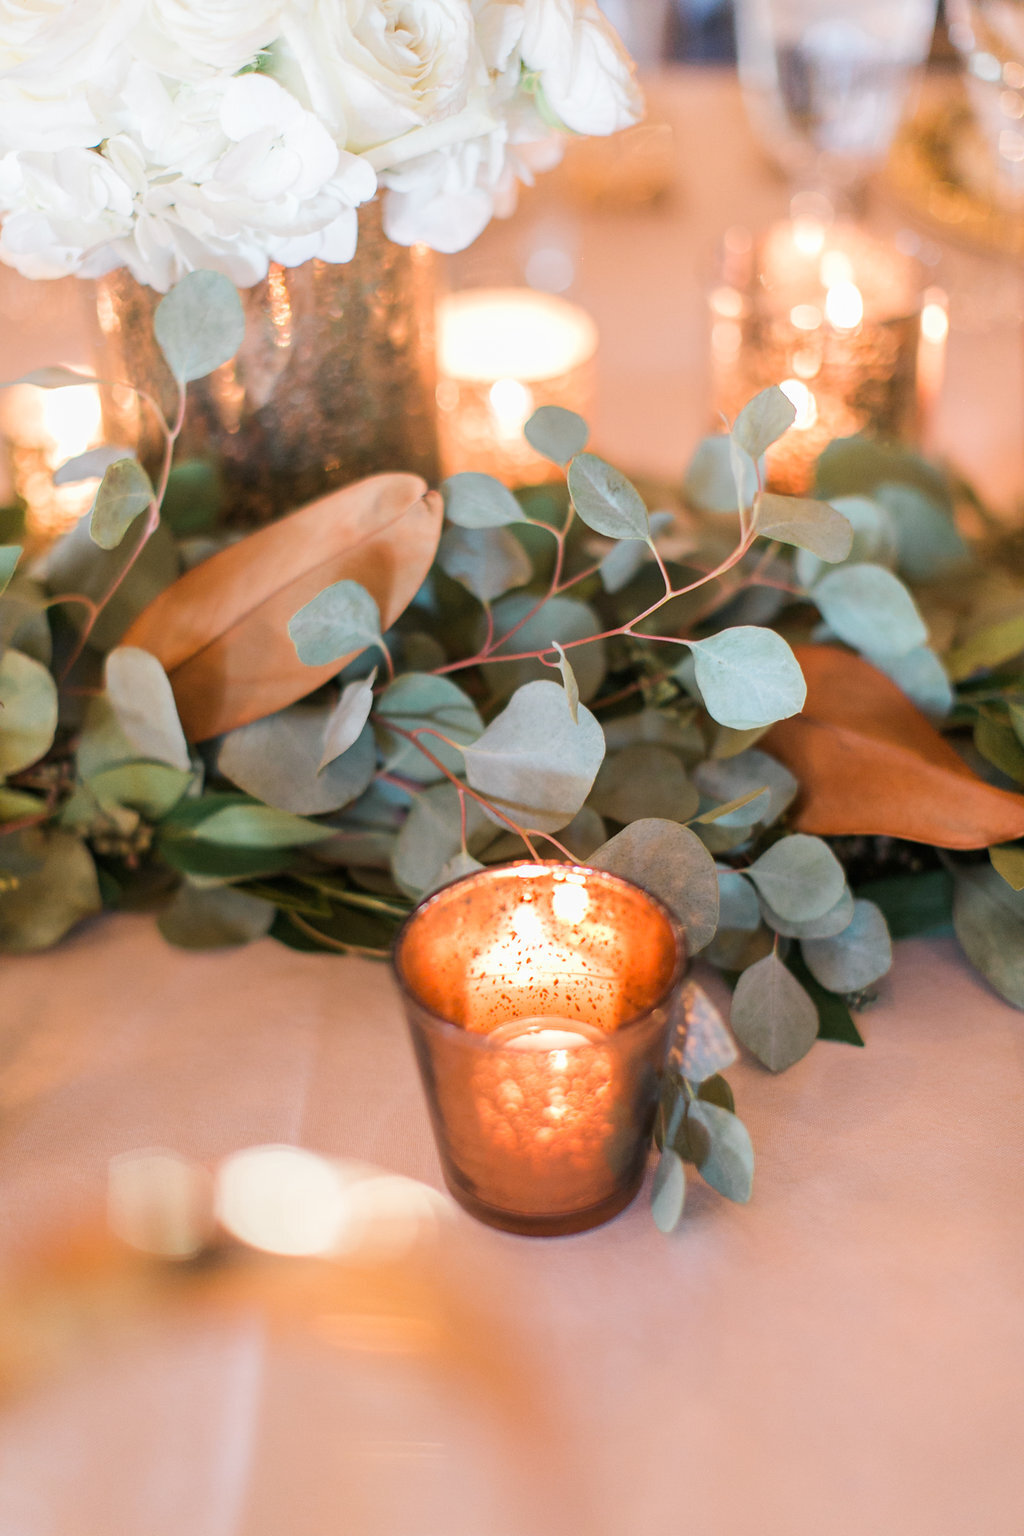 Eucalyptus and Magnolia Floral Table Runner Luxury Rustic Wedding